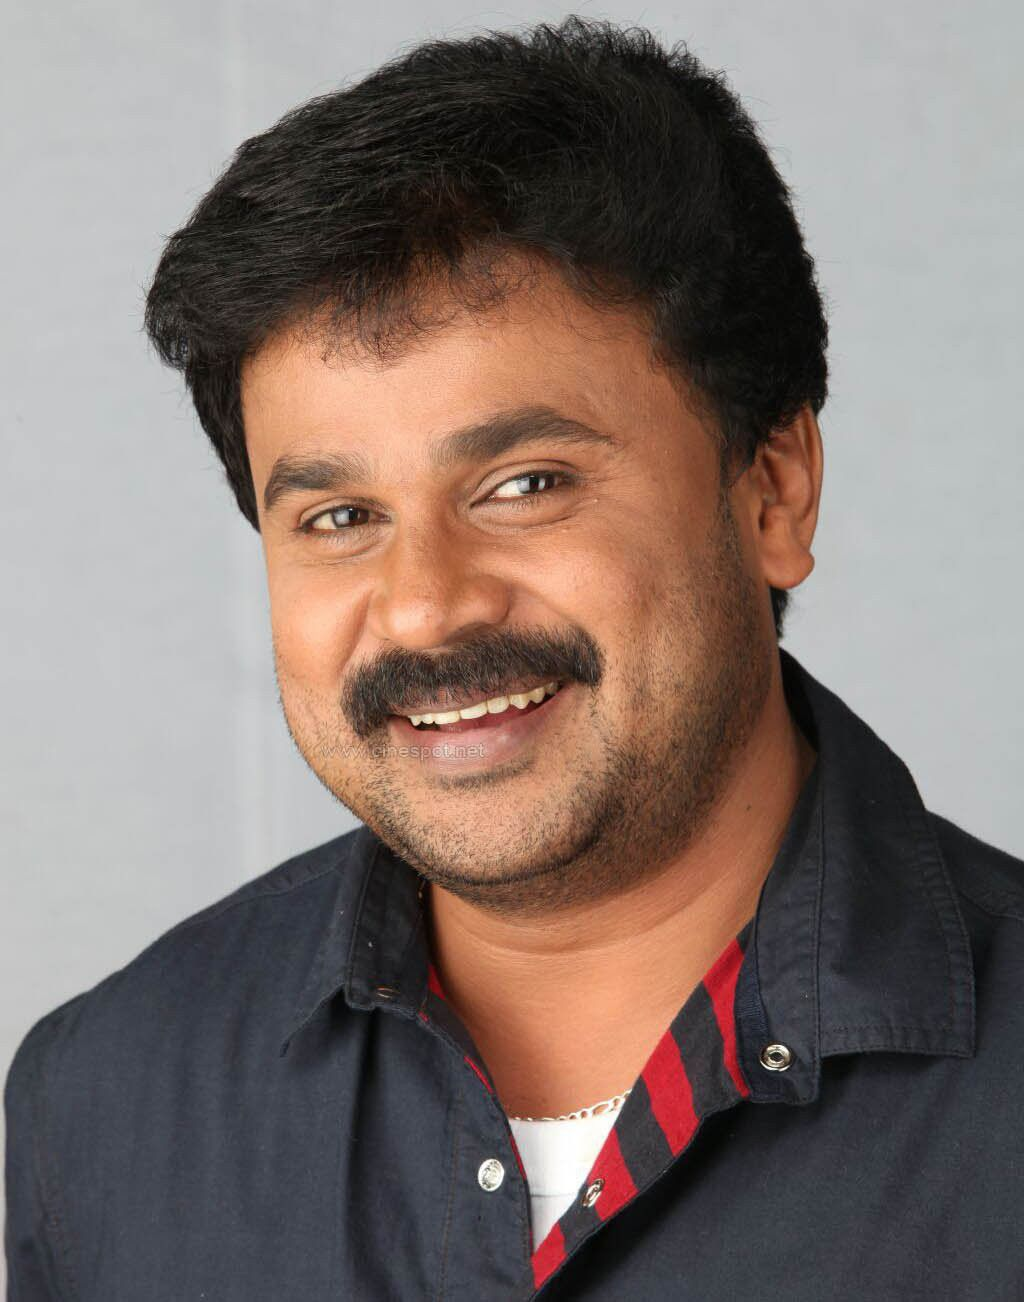 dileep nairdileep rao, dileep general trading llc, dileep industries pvt ltd, dileep tharoor, dileep malayalam, dileep rao forbes, dileep babu, dileep filmography, dileep k nair, dileep nair, dileep hairstyle, dileep hits mp3 songs, dileep latest movie, dileep dhakal, dileep behind bhavana attack, dilip kumar, dileep latest movie list, dileep wiki, dileep kumar goldman sachs, dileep central jail movie